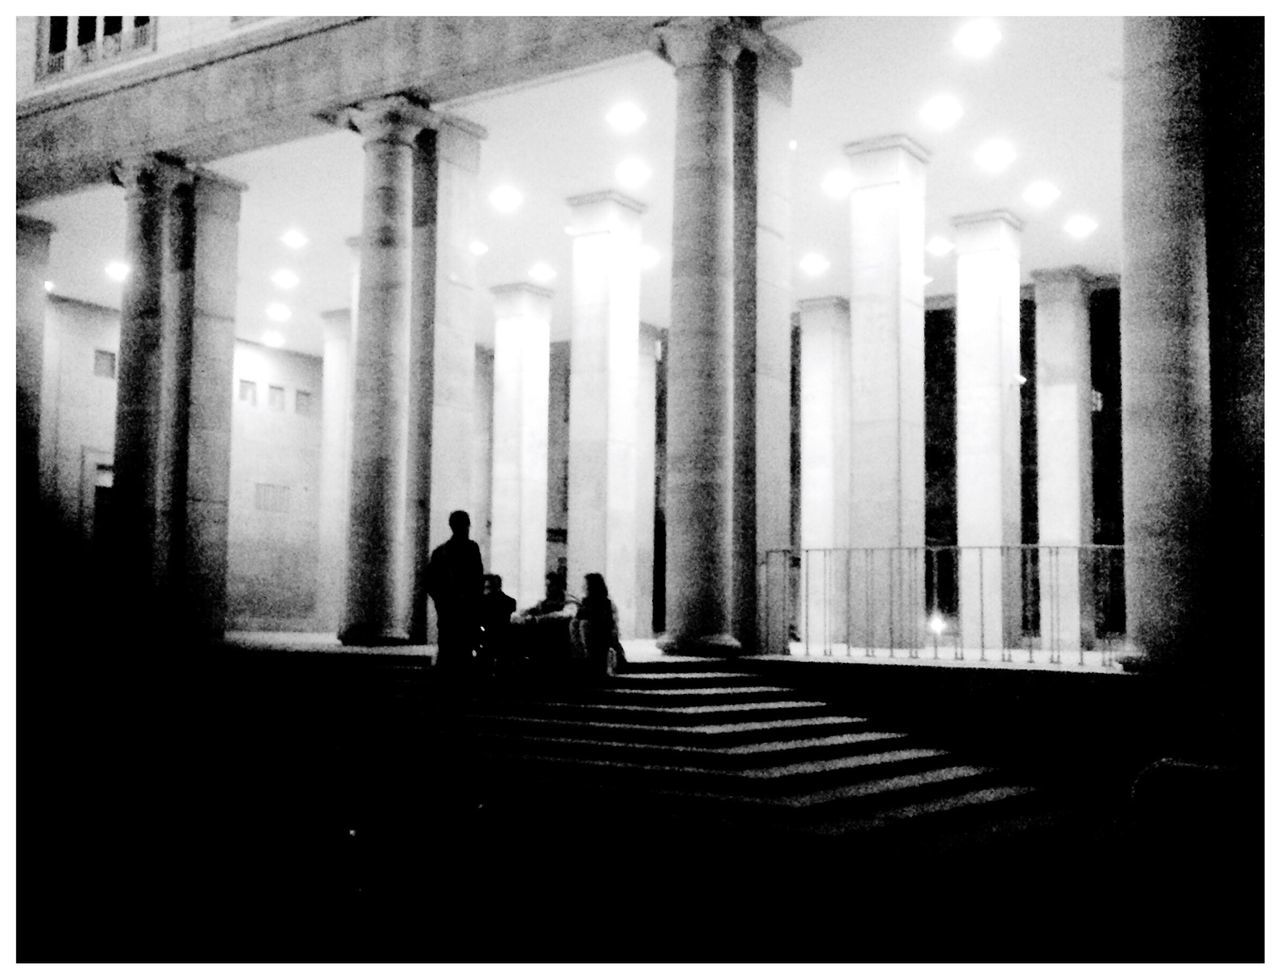 Creatures Of The Night Shadowhunters Light And Shadow Shillouette Peoplephotography Black&white Notes From Berlin Lerone-frames Streetphoto_bw Group Architecture_bw Silhouette Silence Group Photo Blending Into The City Schattenspiel